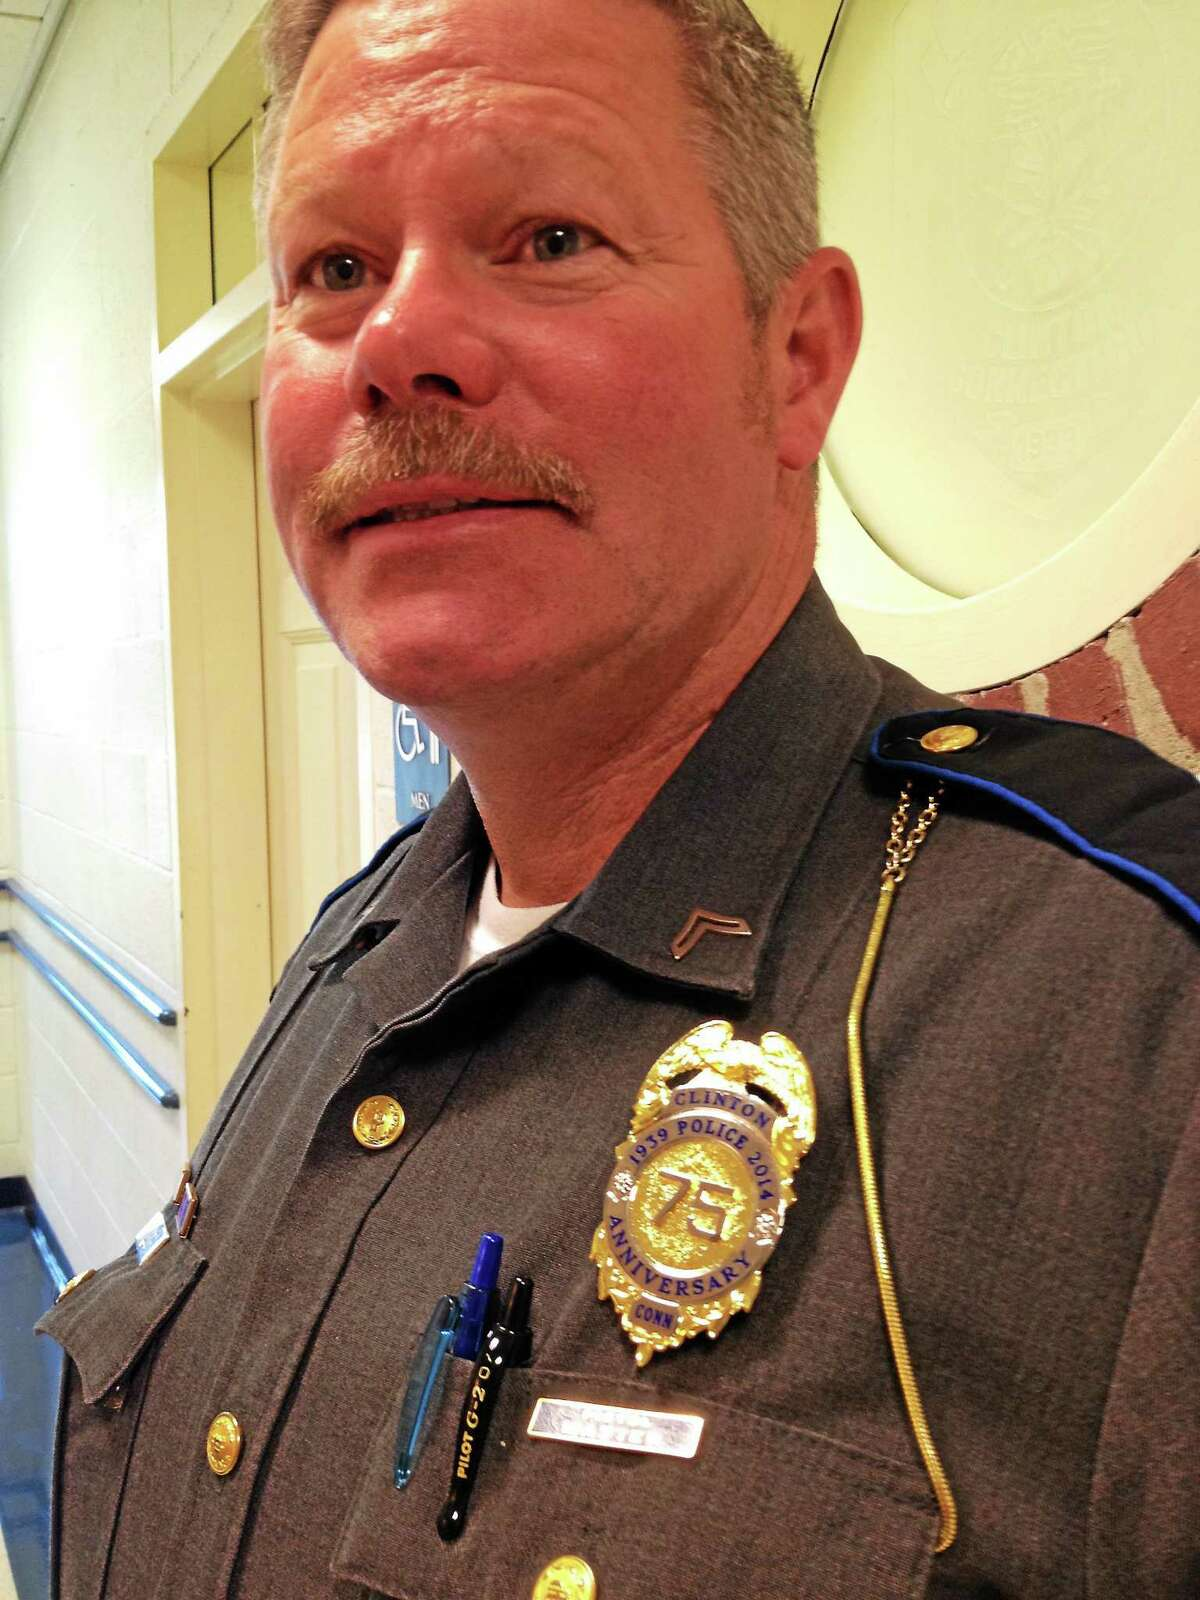 Clinton police Cpl. Craig Lee with the department's 75th anniversary badge.